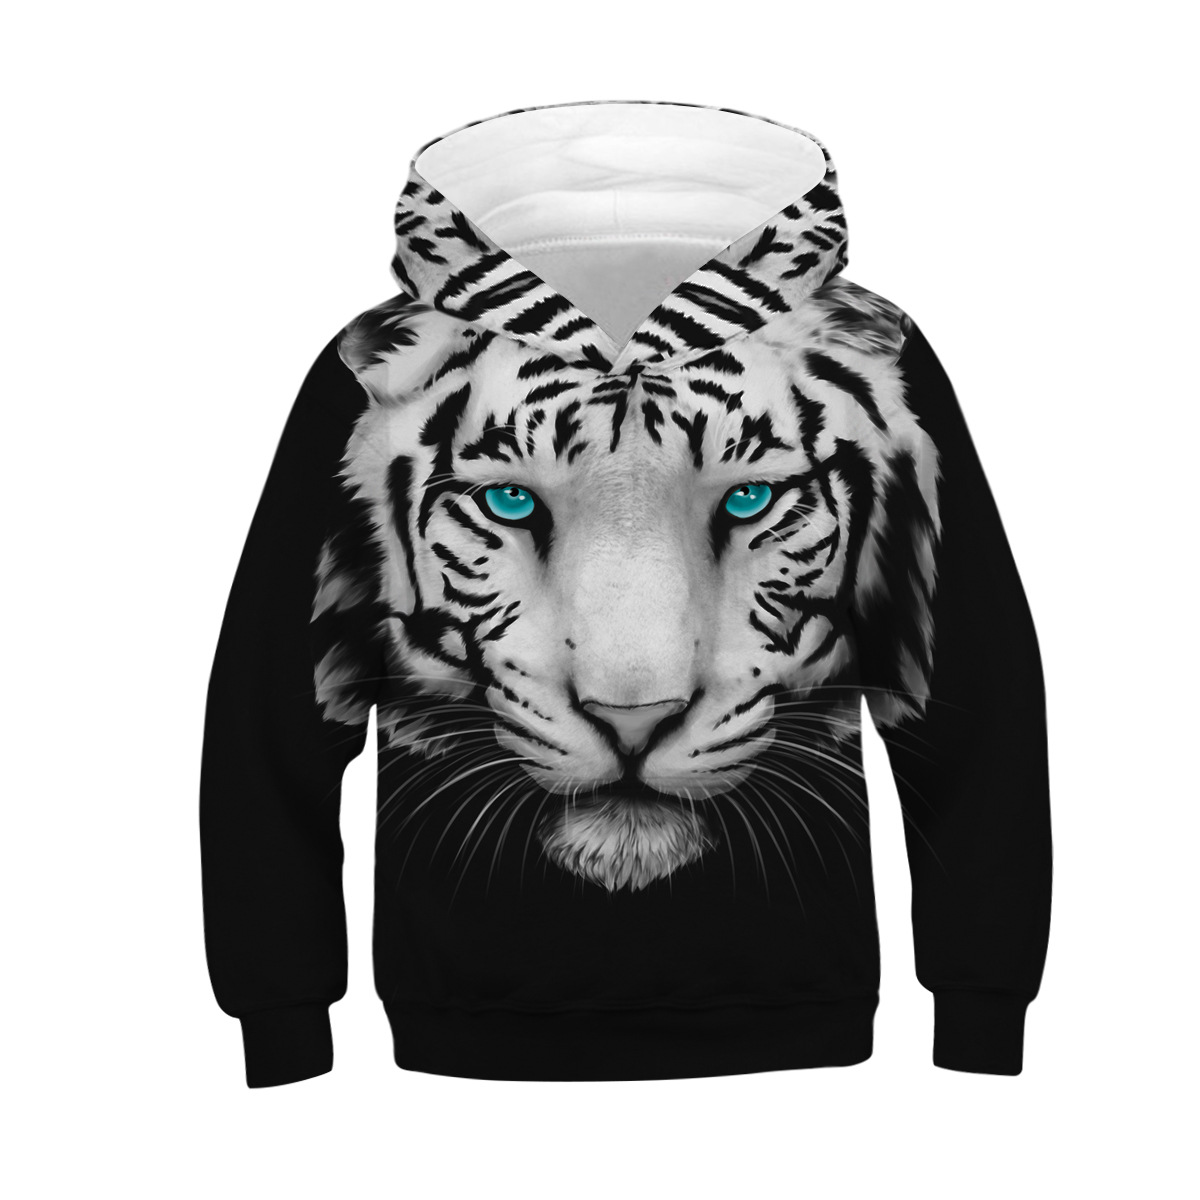 Sweater 3d Tiger Online Wholesale Distributors, Sweater 3d